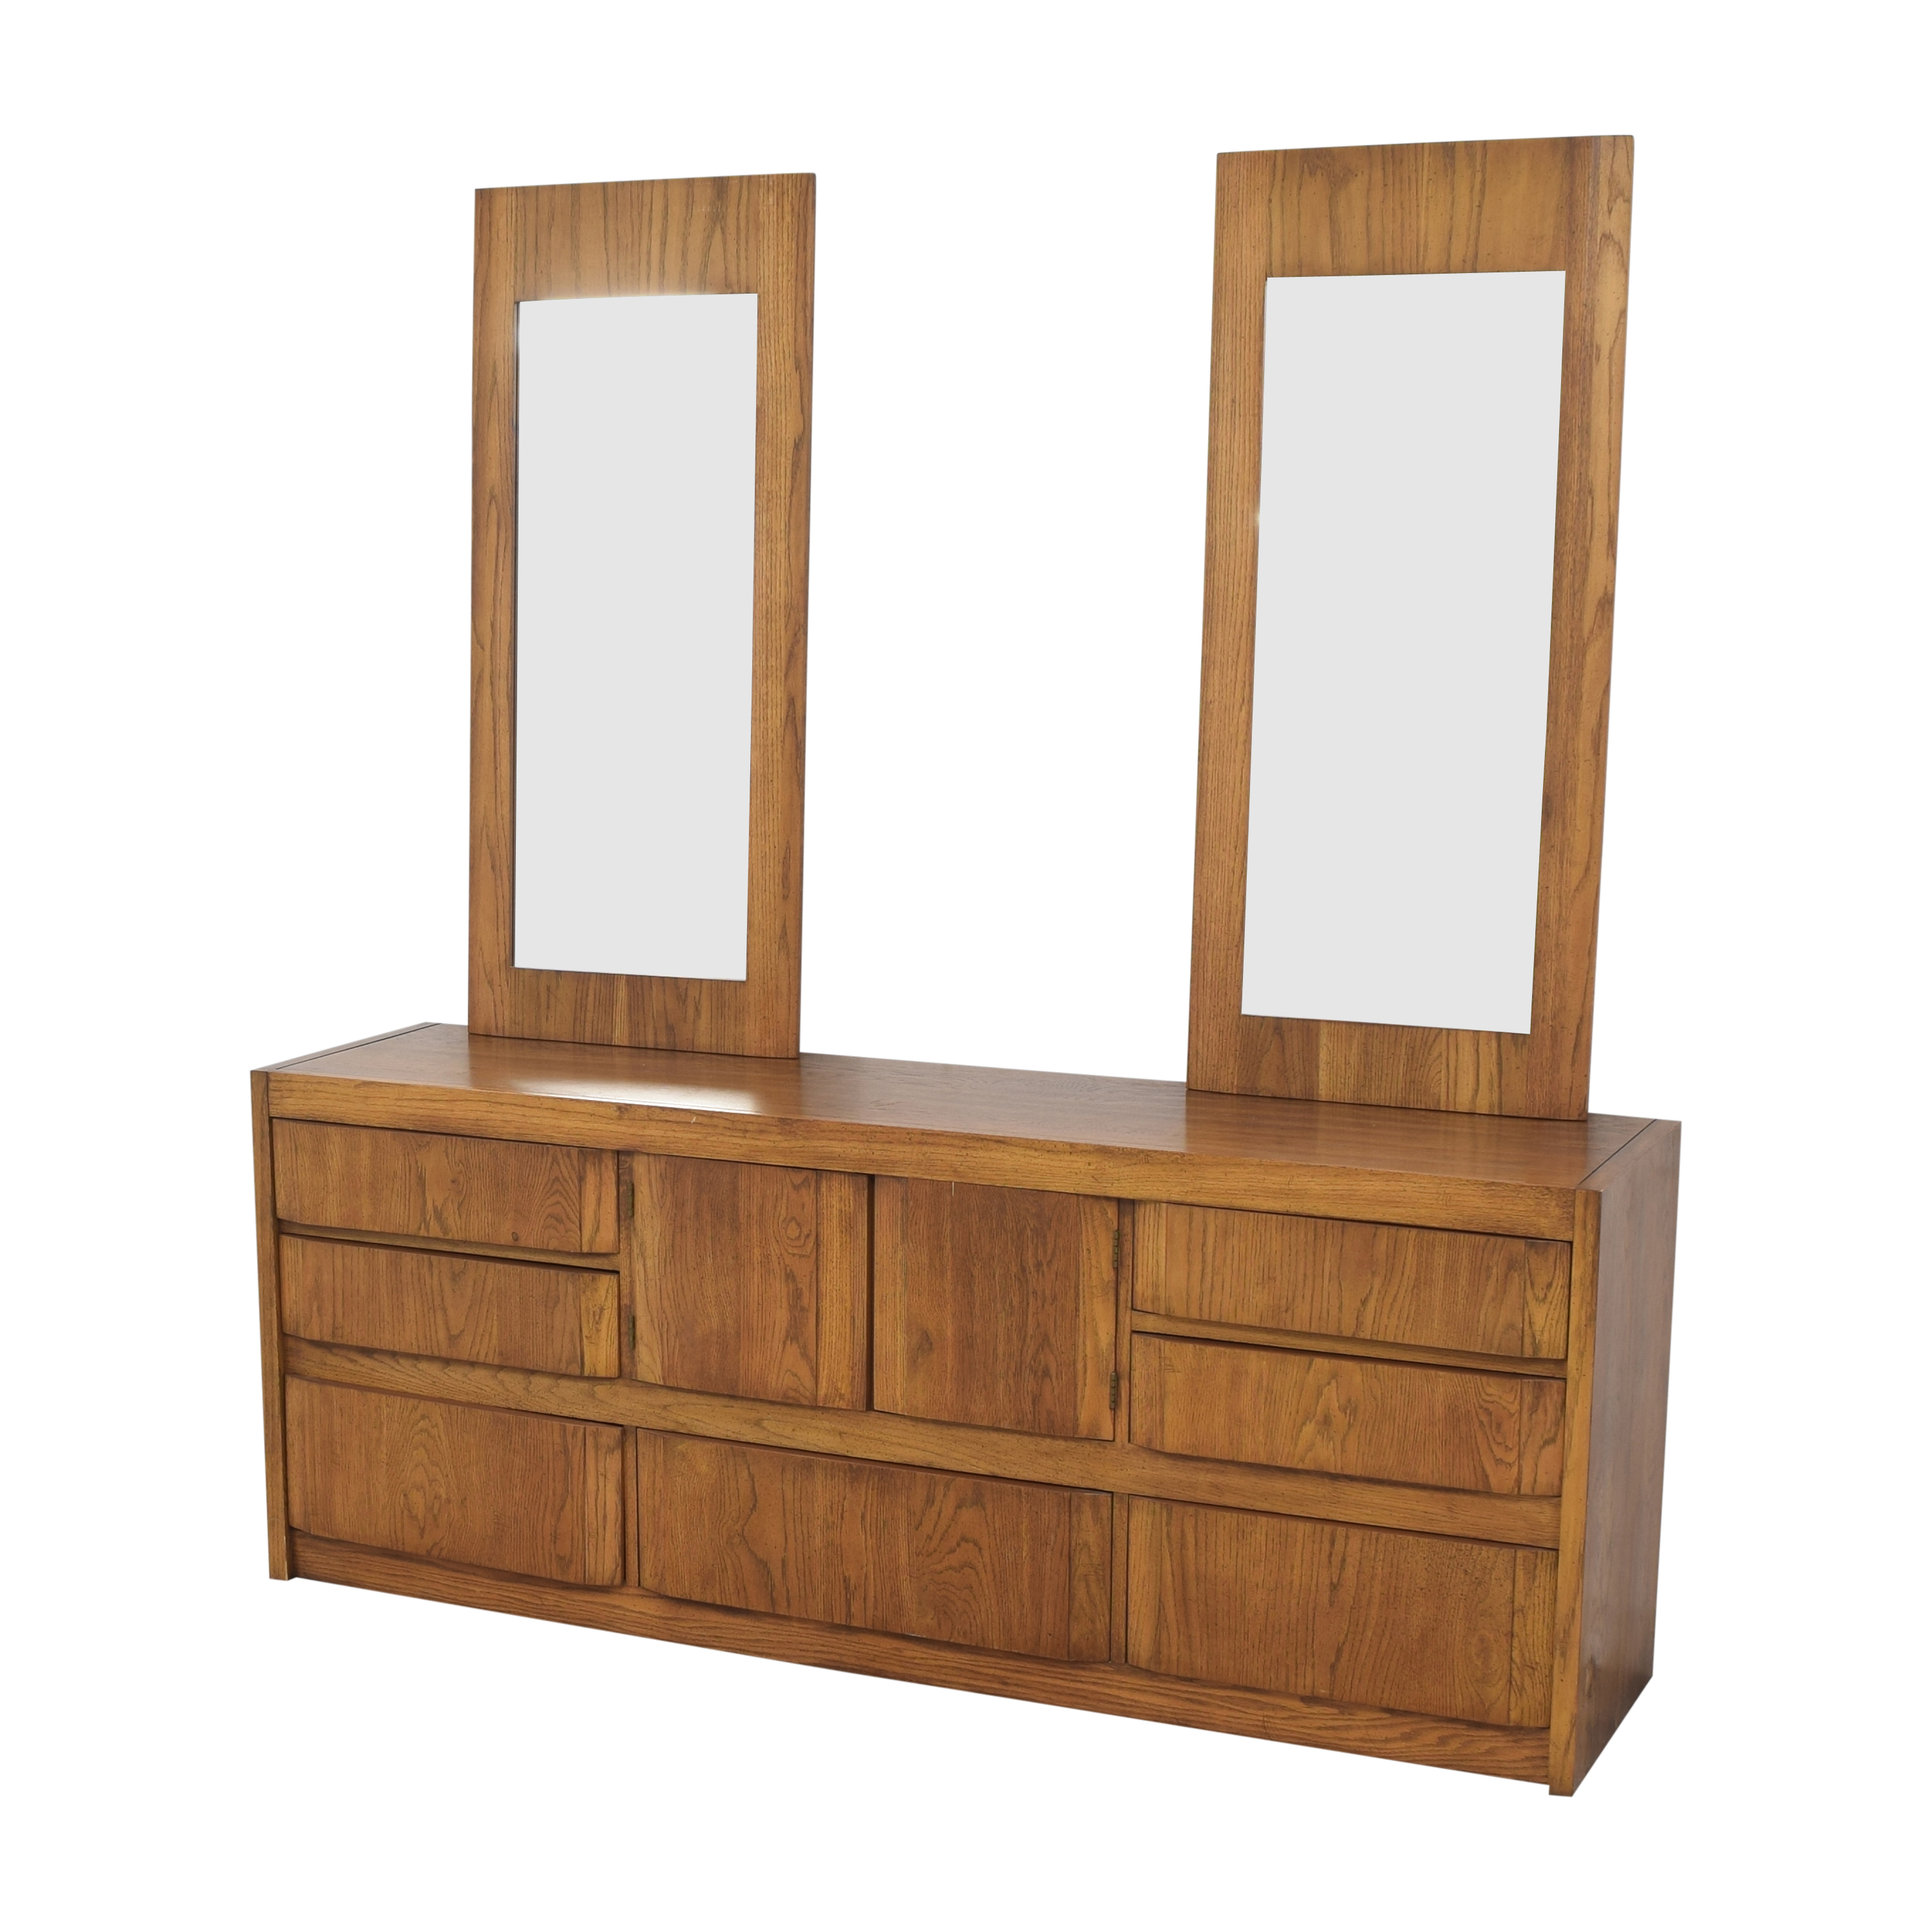 Huntley by Thomasville Triple Dresser with Mirrors Thomasville